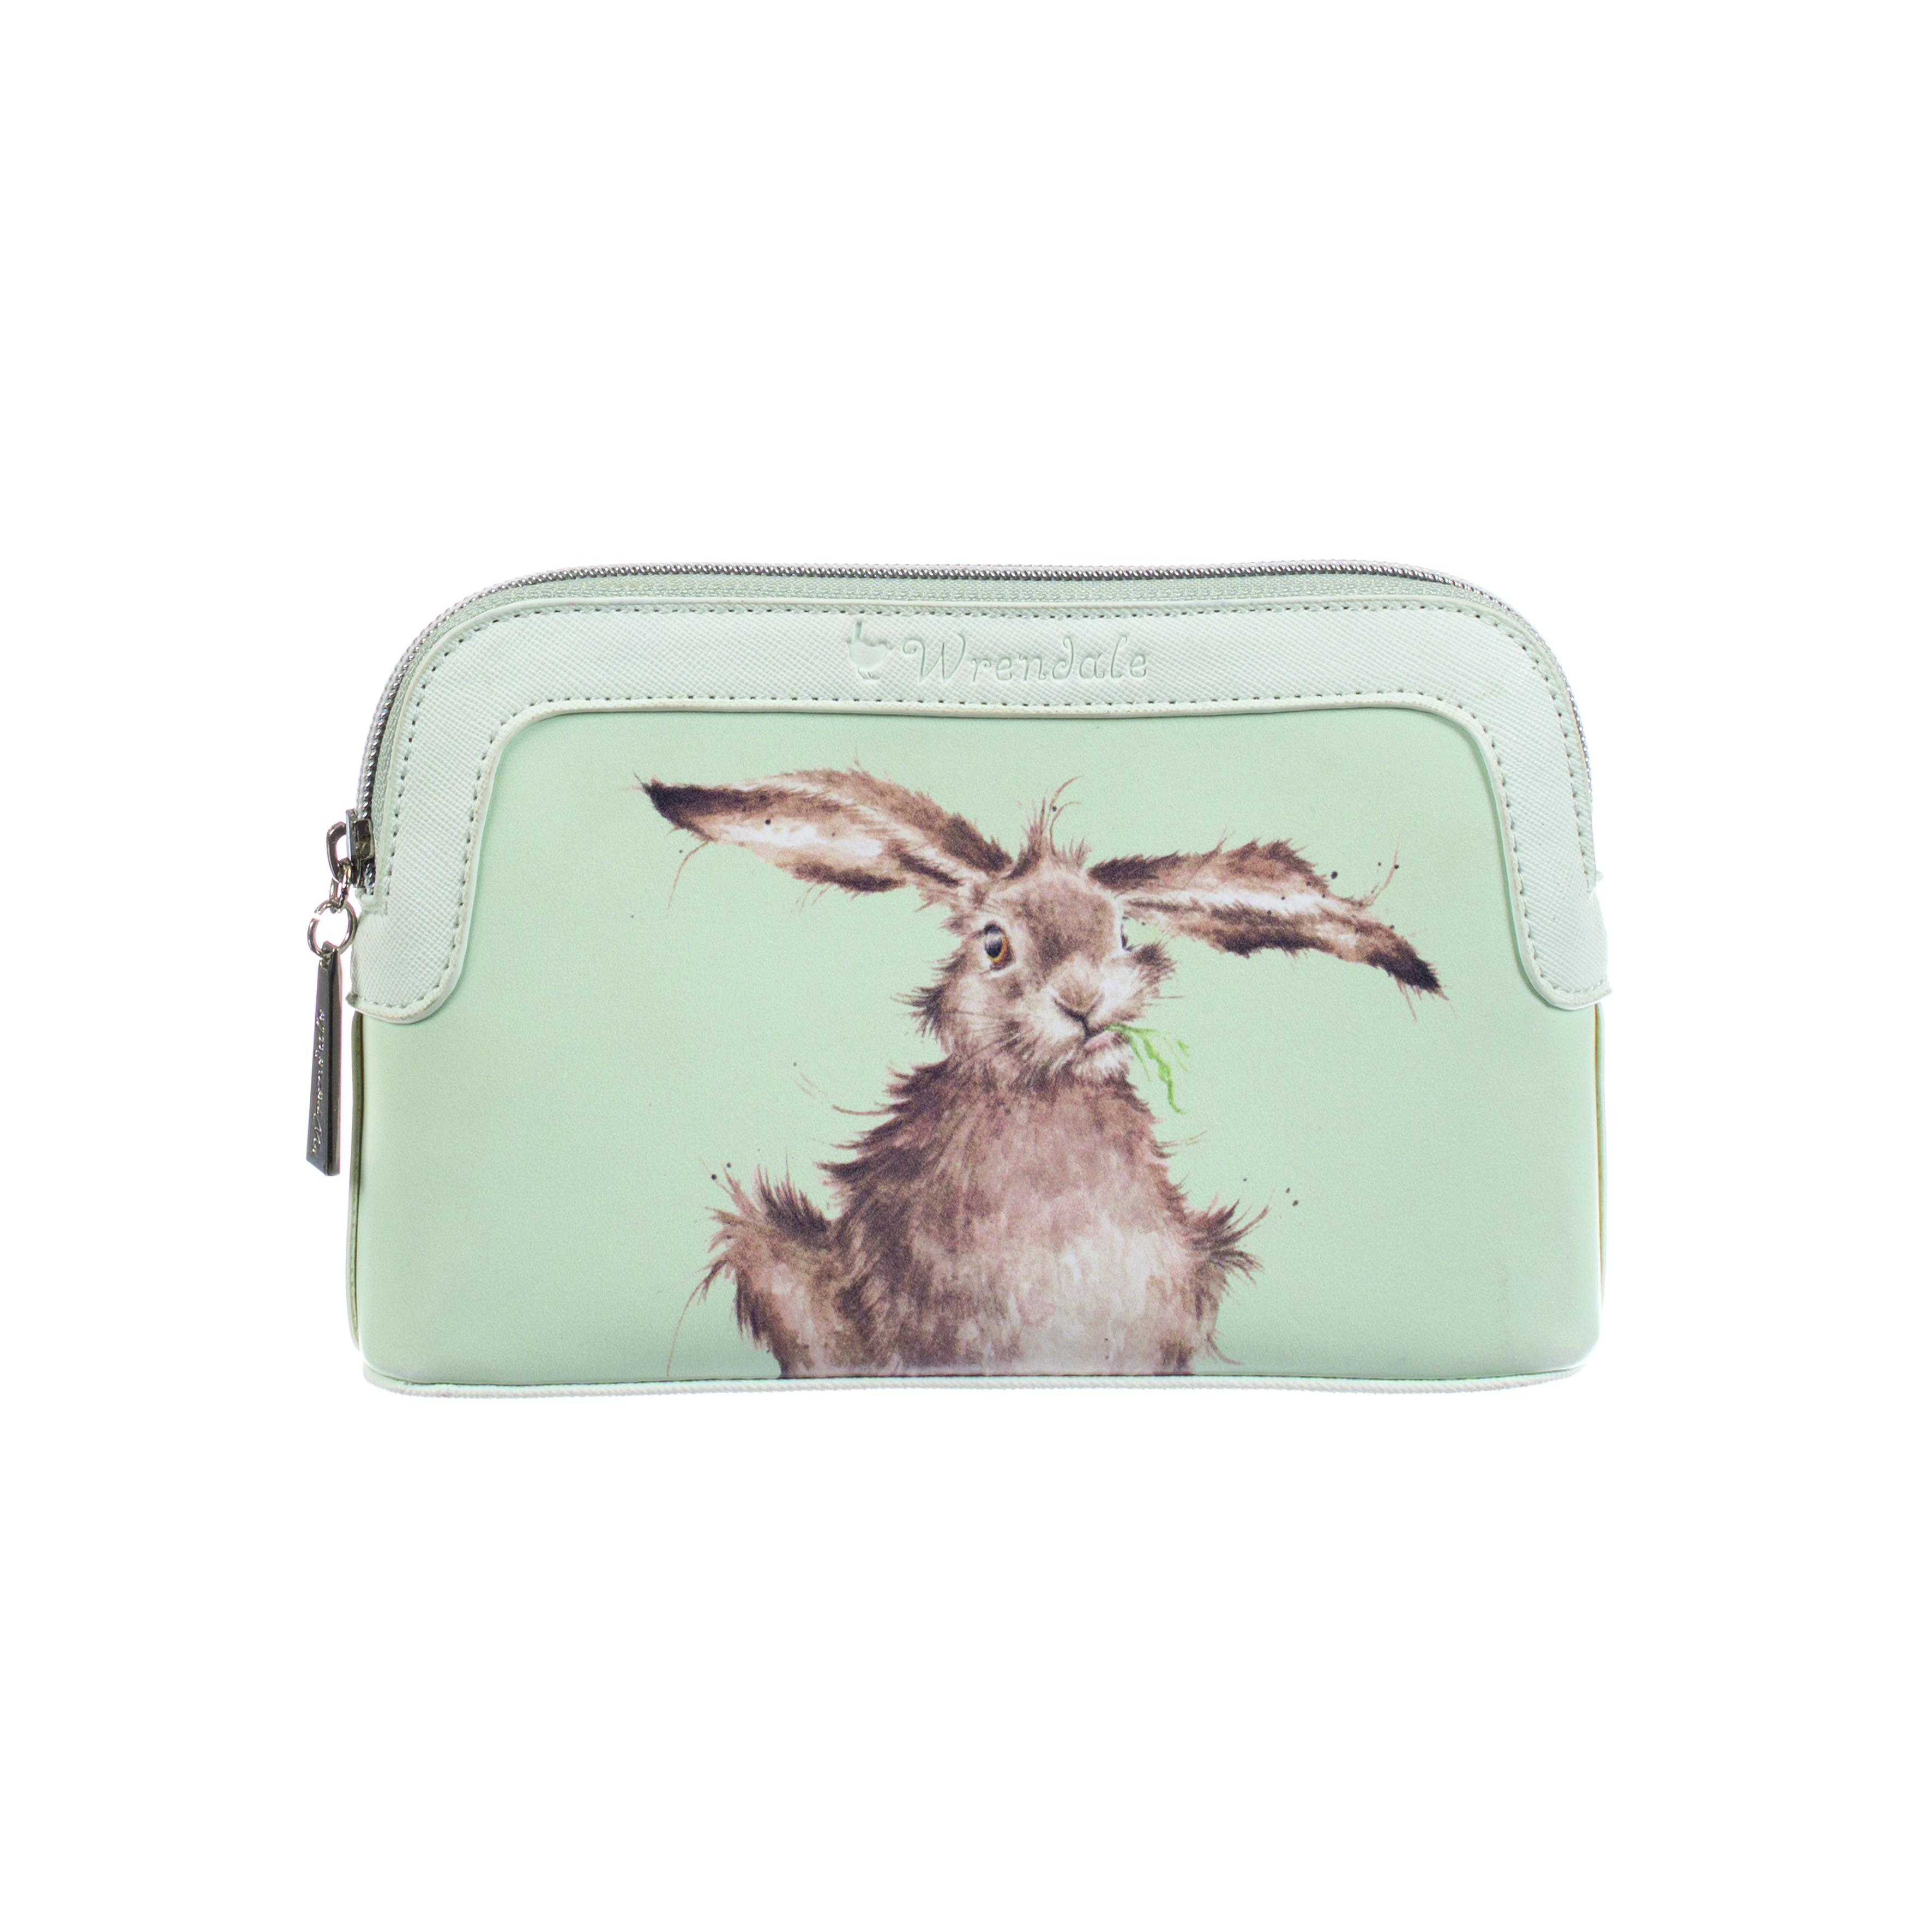 WRENDALE COSMETIC BAG SMALL - HARE FRONT